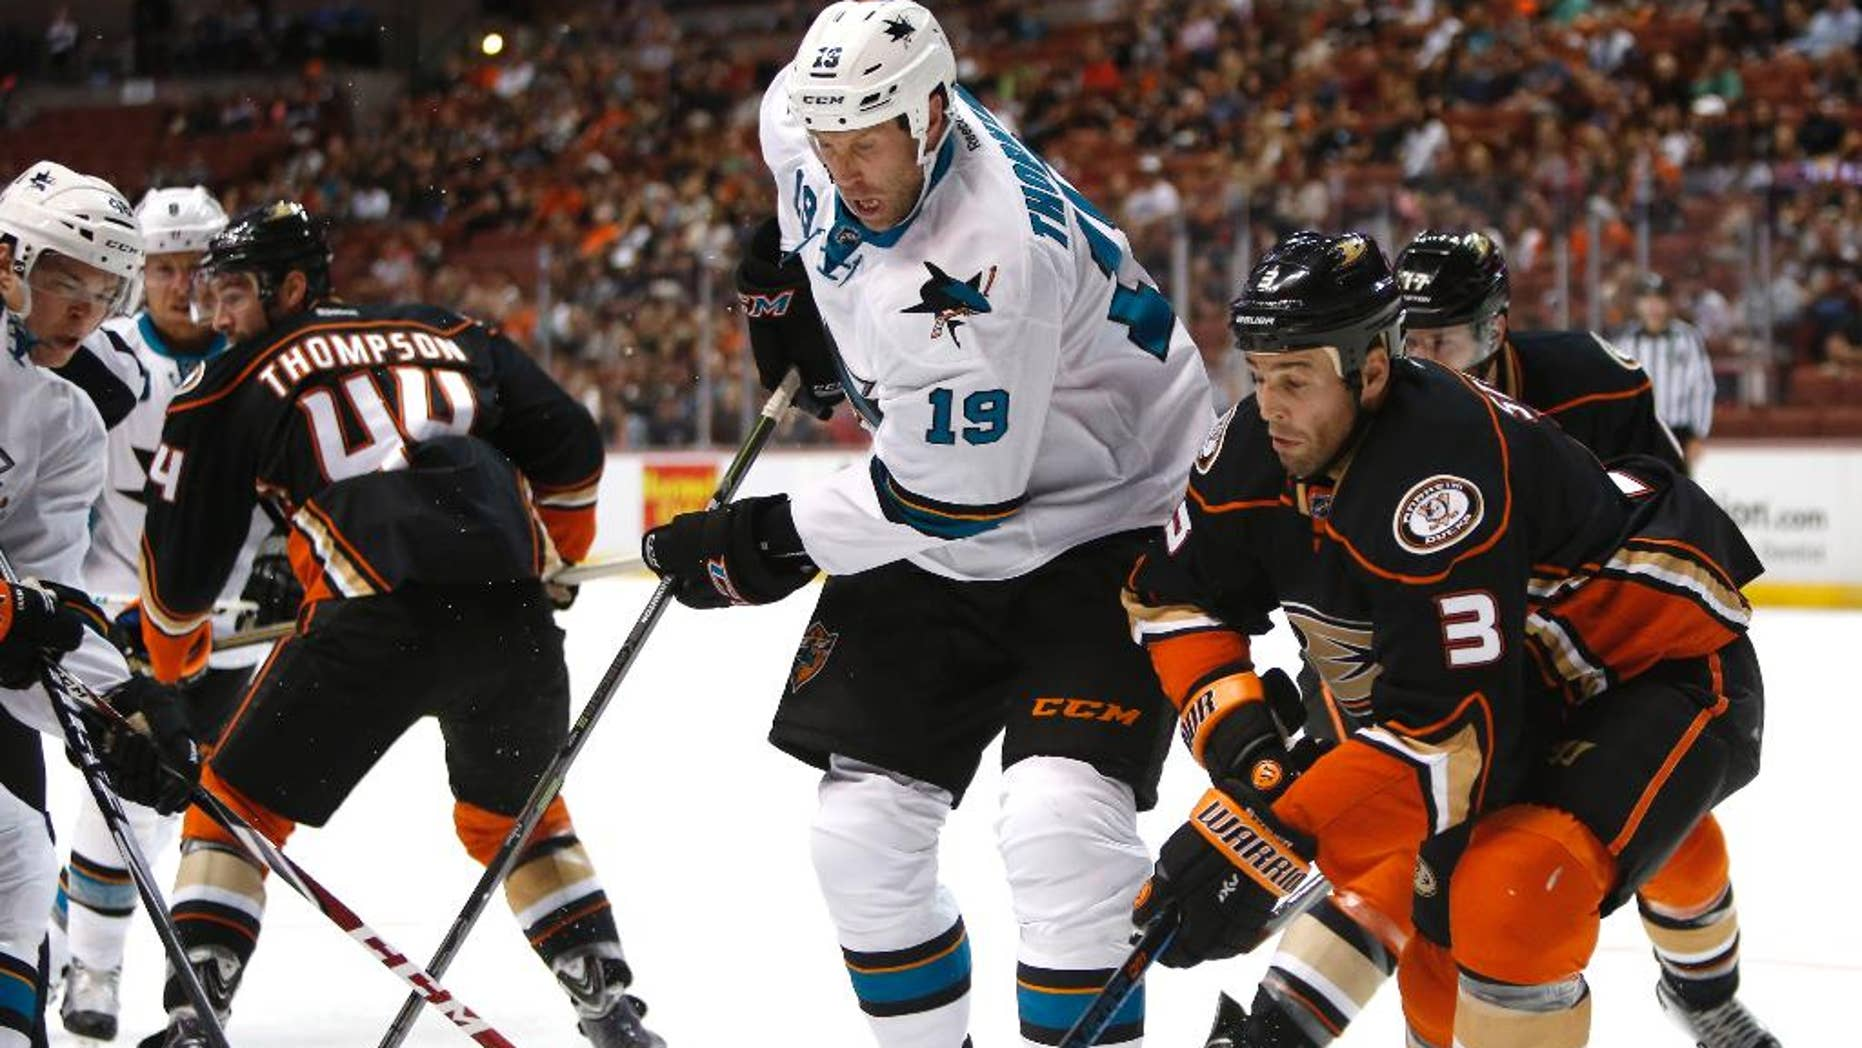 San Jose Sharks center Joe Thornton (19) works for the puck against Anaheim Ducks defenseman Clayton Stoner (3) during the first period of a preseason NHL hockey game in Anaheim, Calif., on Saturday, Oct. 4, 2014. (AP Photo/Christine Cotter)